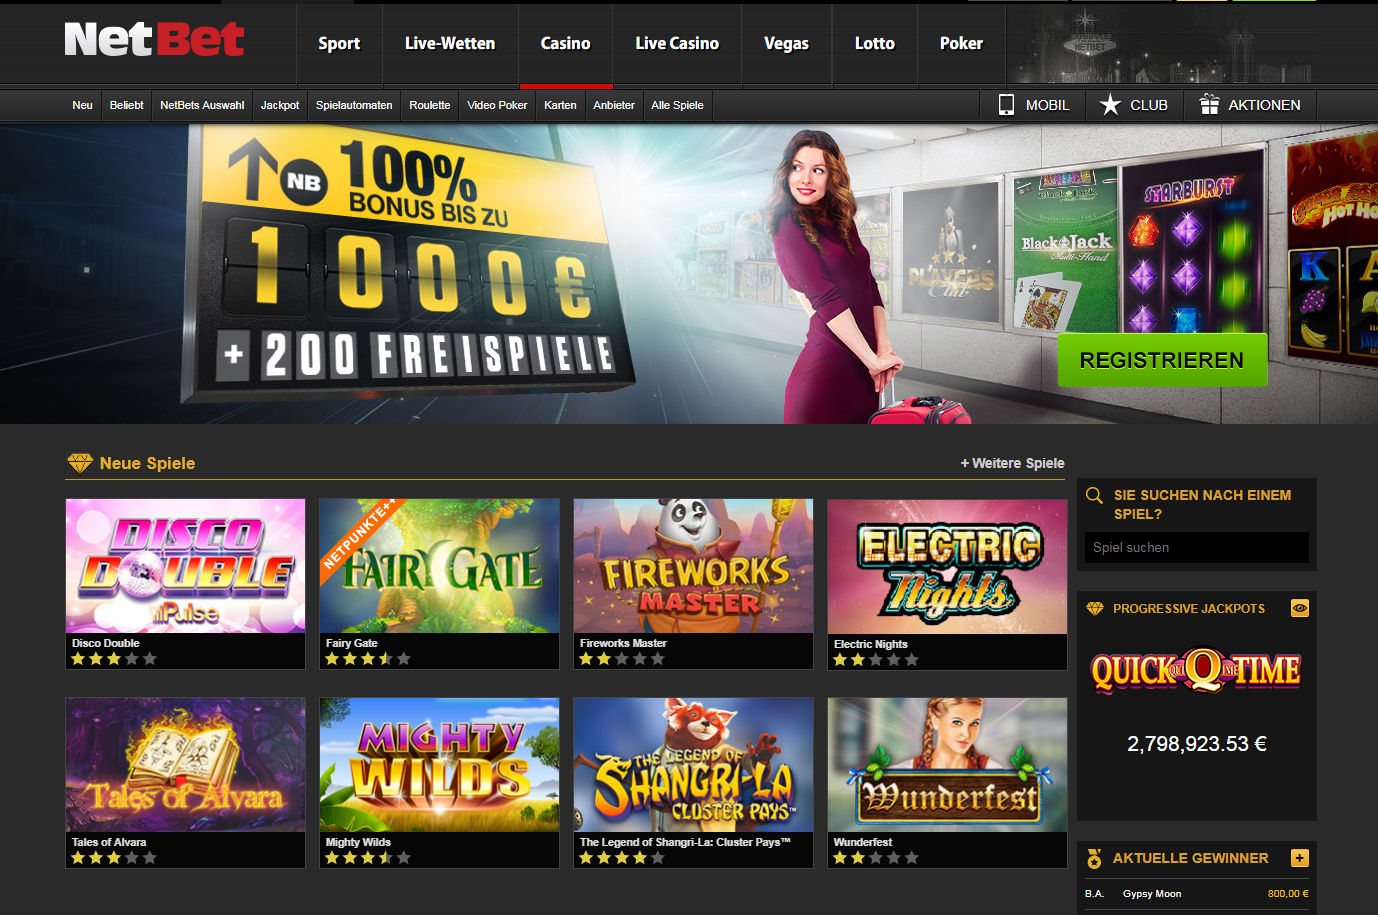 Casinos leander games netbet tv - 344387